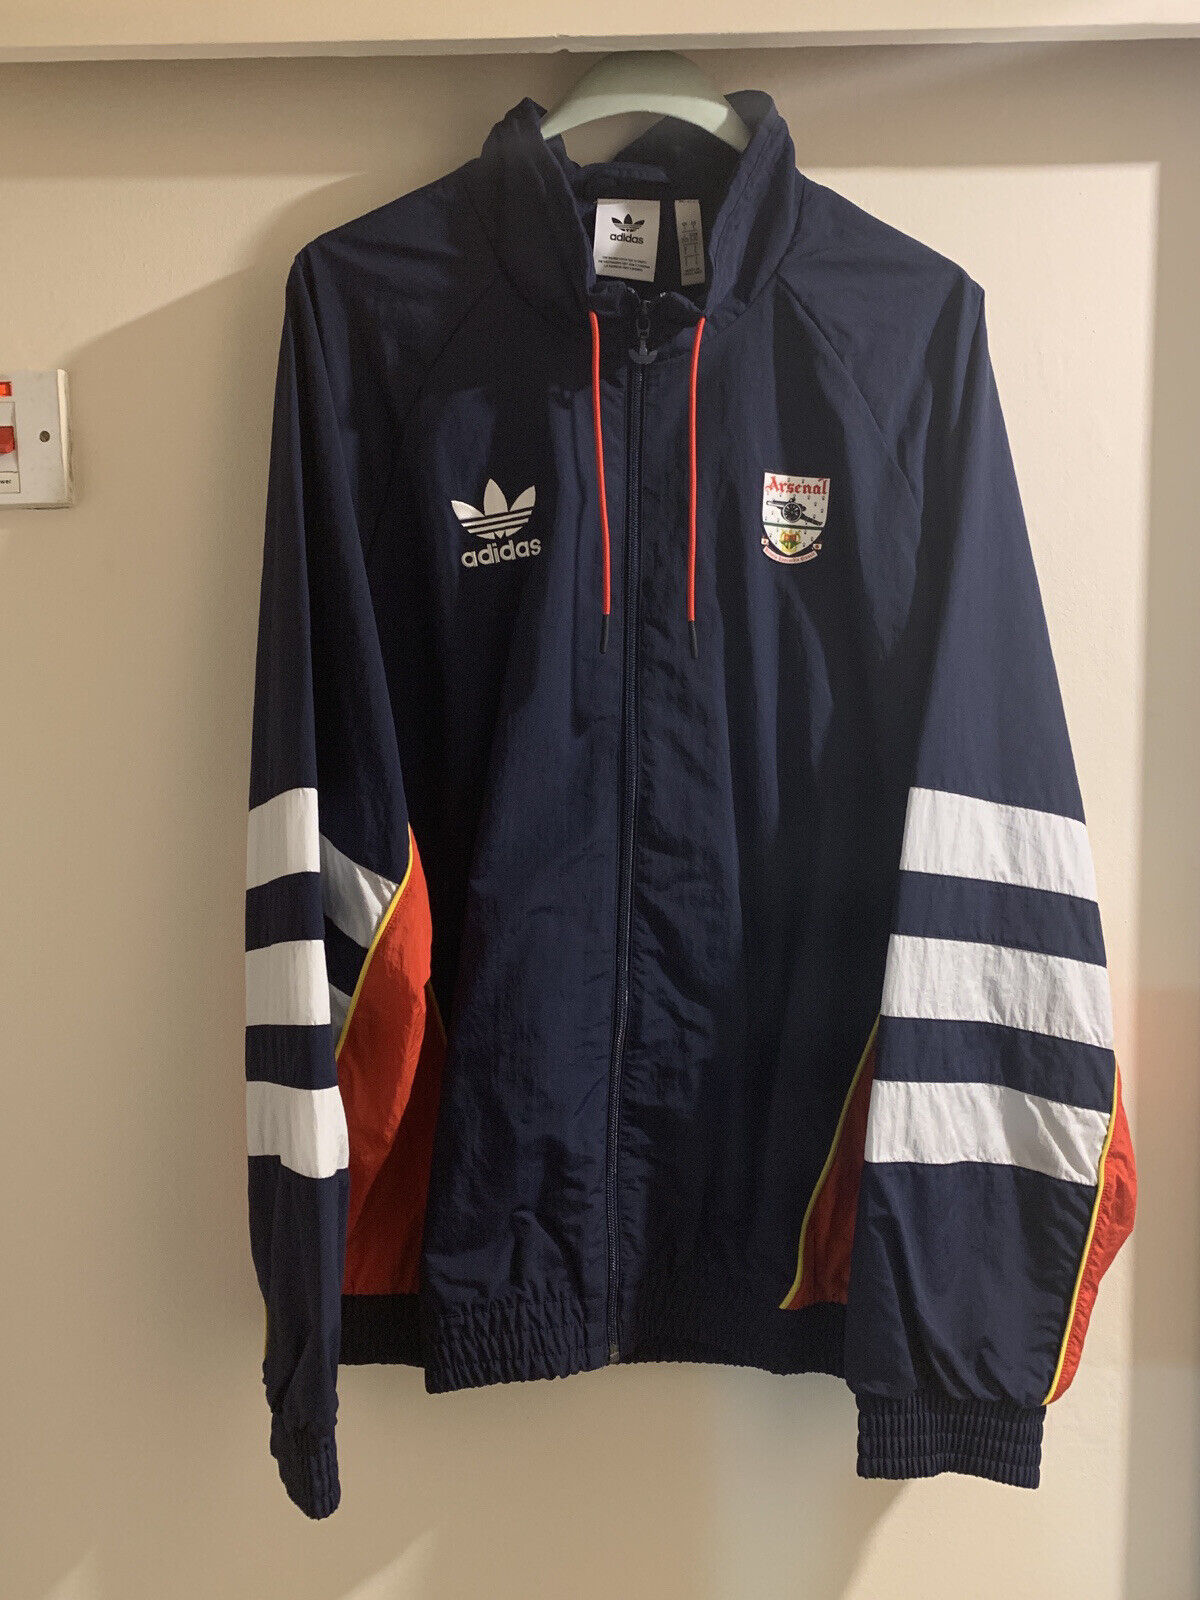 Adidas Arsenal 91/93 Trefoil Track Top size Large BNWT